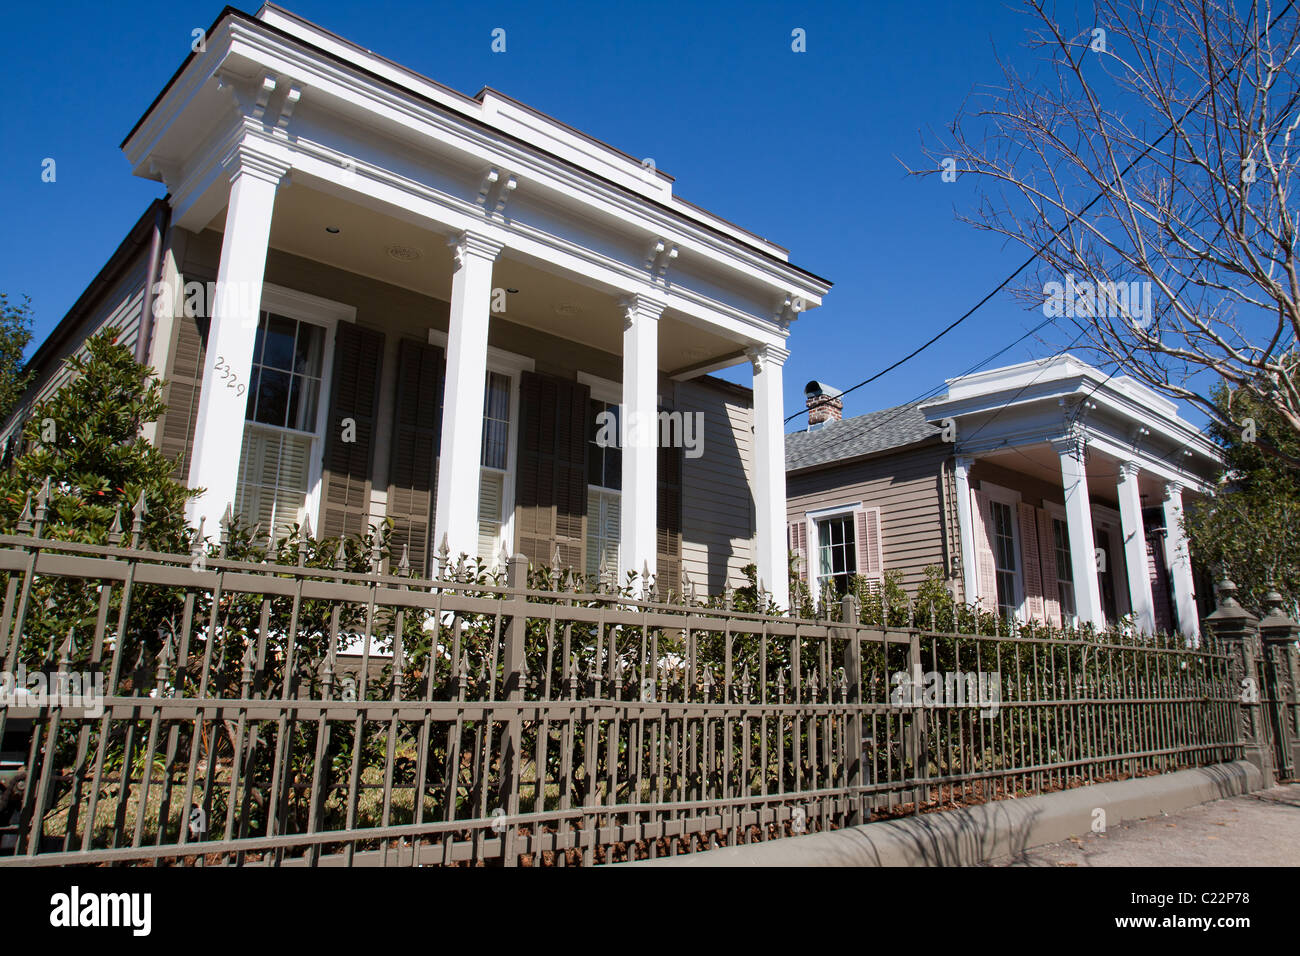 new orleans houses garden district stock photos new orleans houses garden district stock. Black Bedroom Furniture Sets. Home Design Ideas